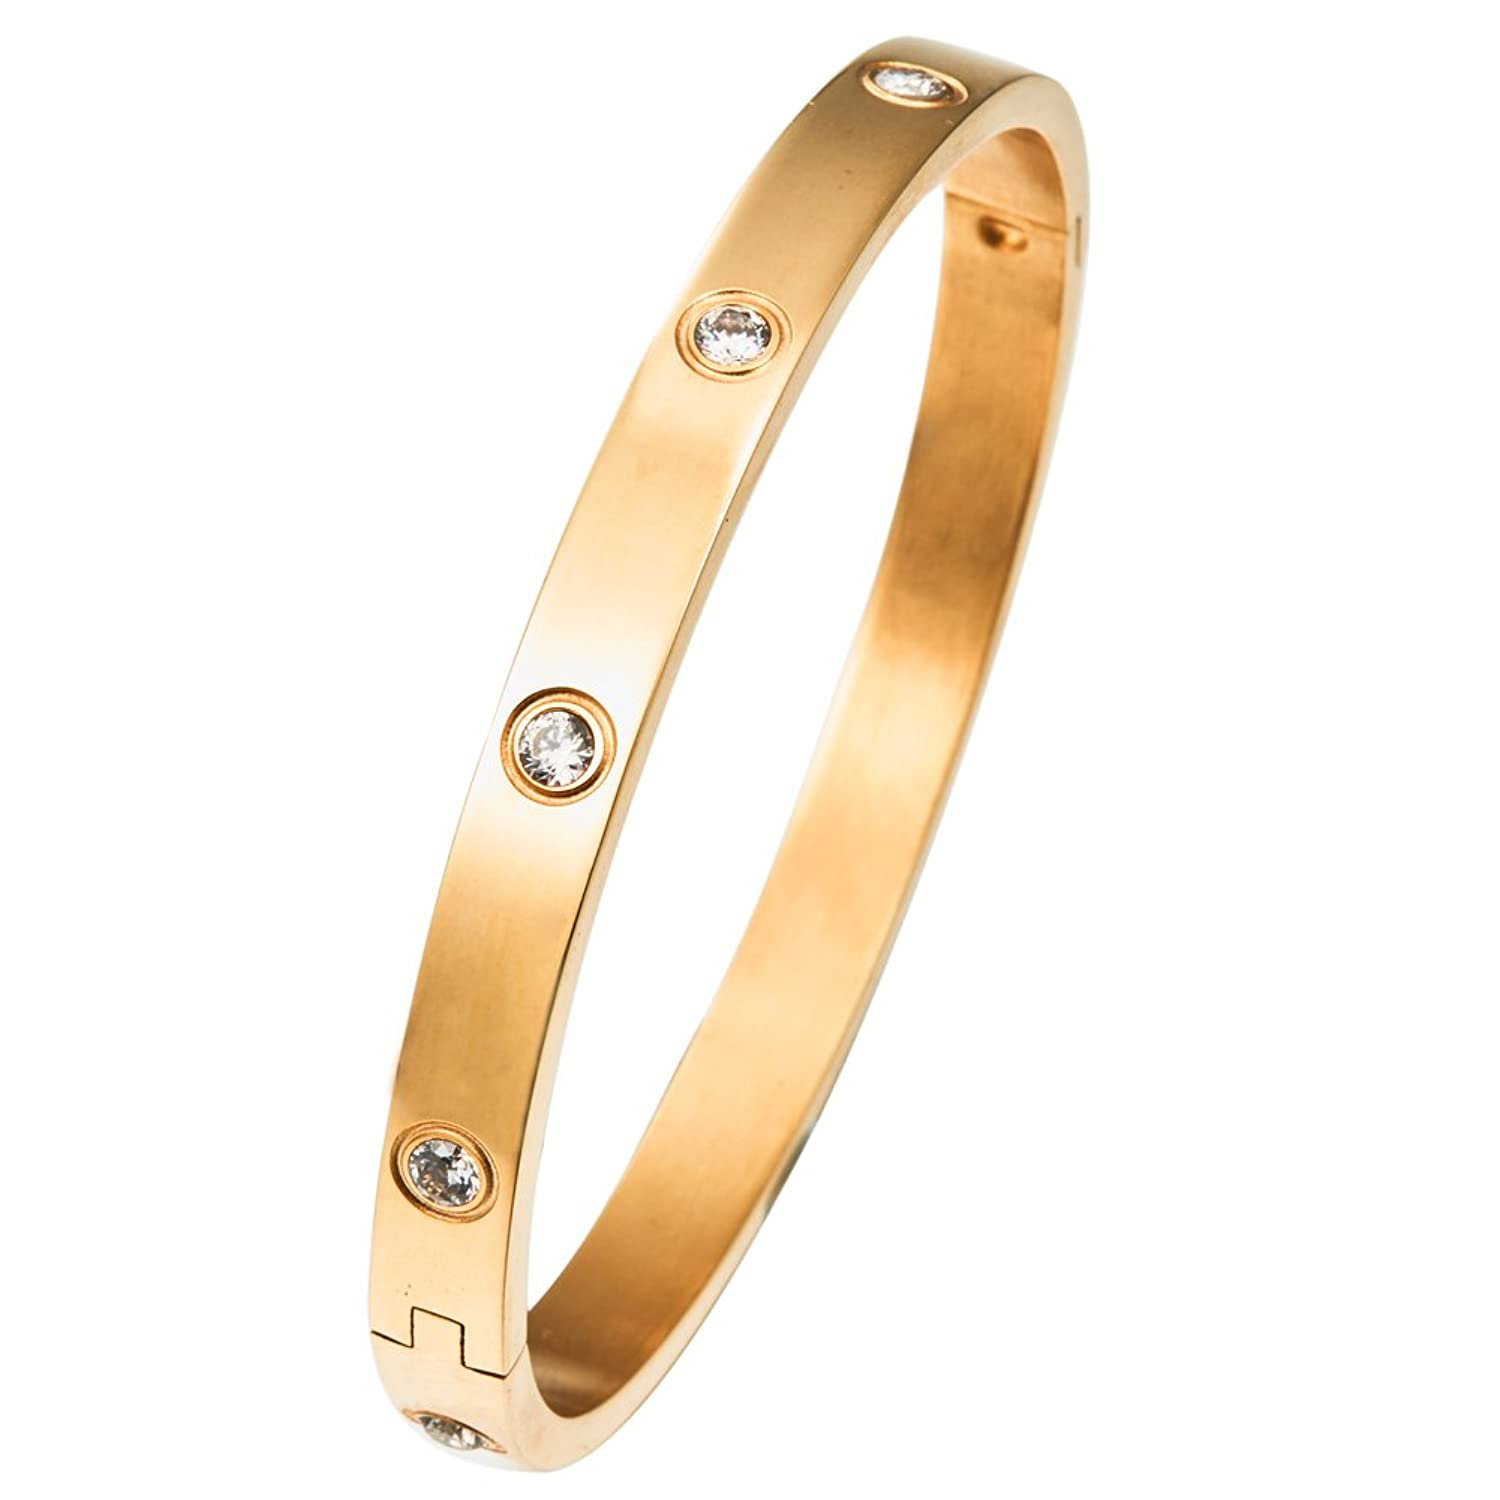 bangles sz banque cartier yellow products bangle gold bracelet love solid diamond